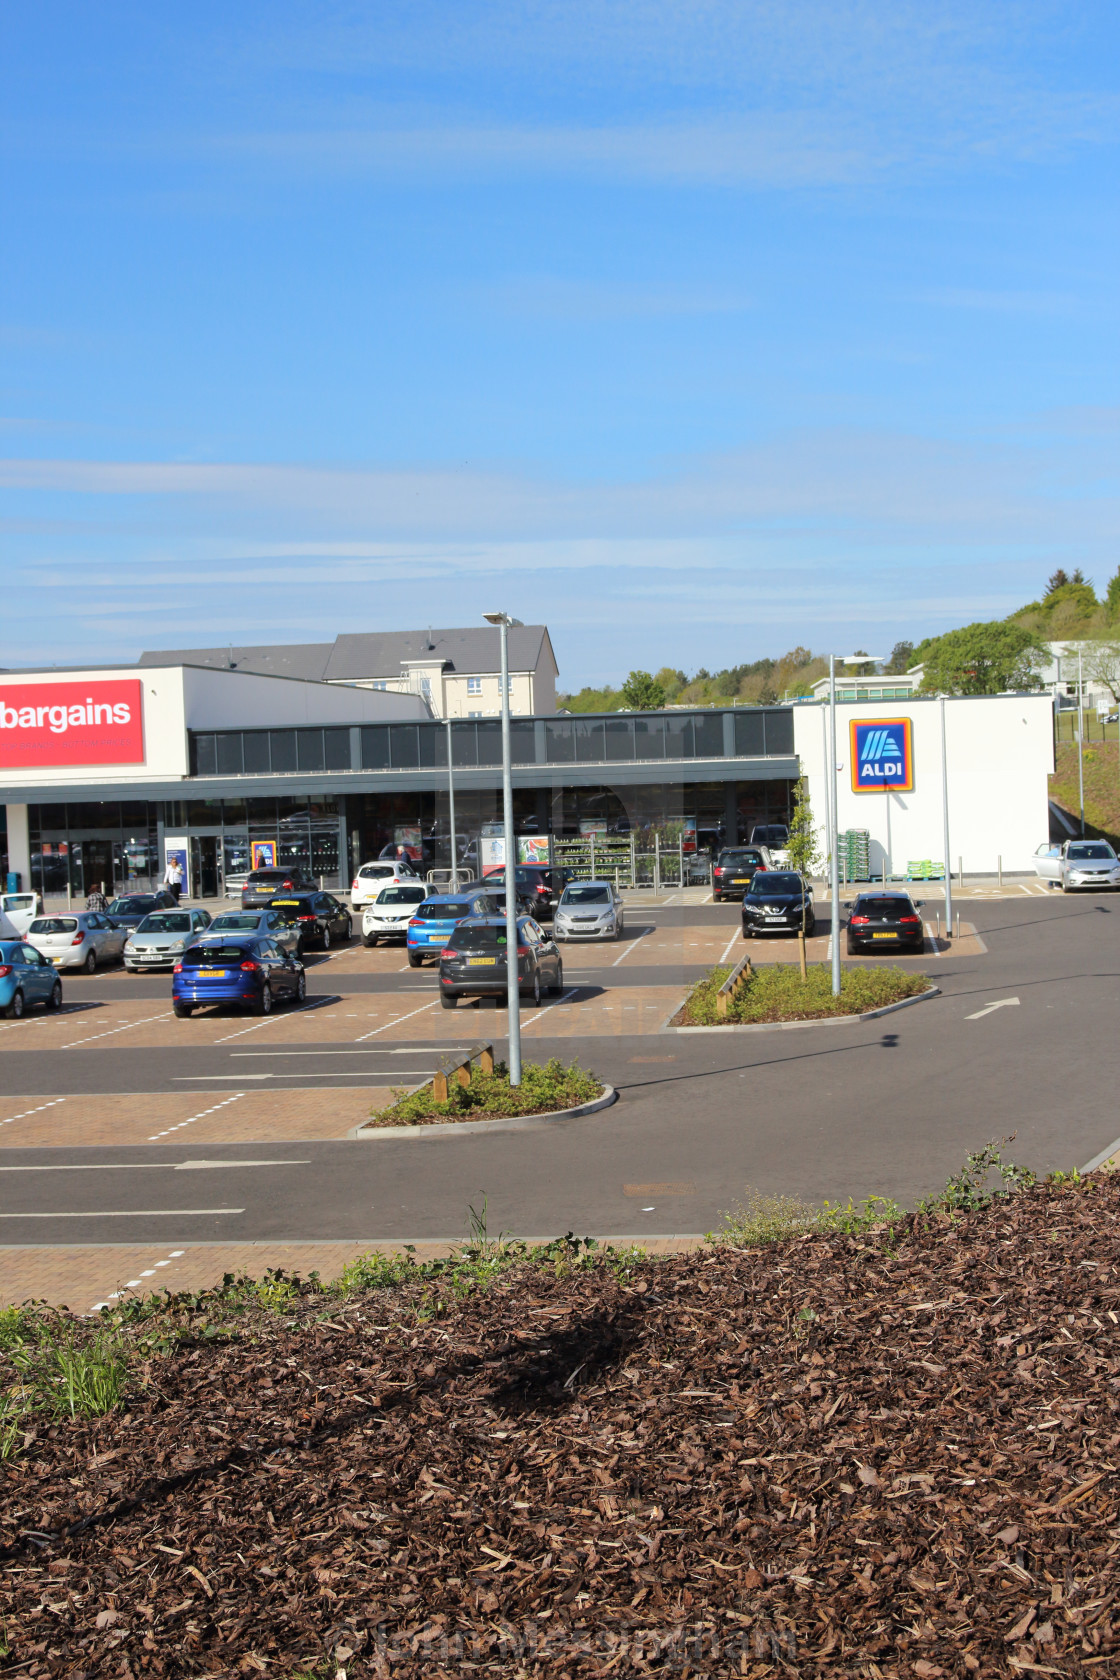 """Aldi store in Mavor Avenue, East Kilbride."" stock image"